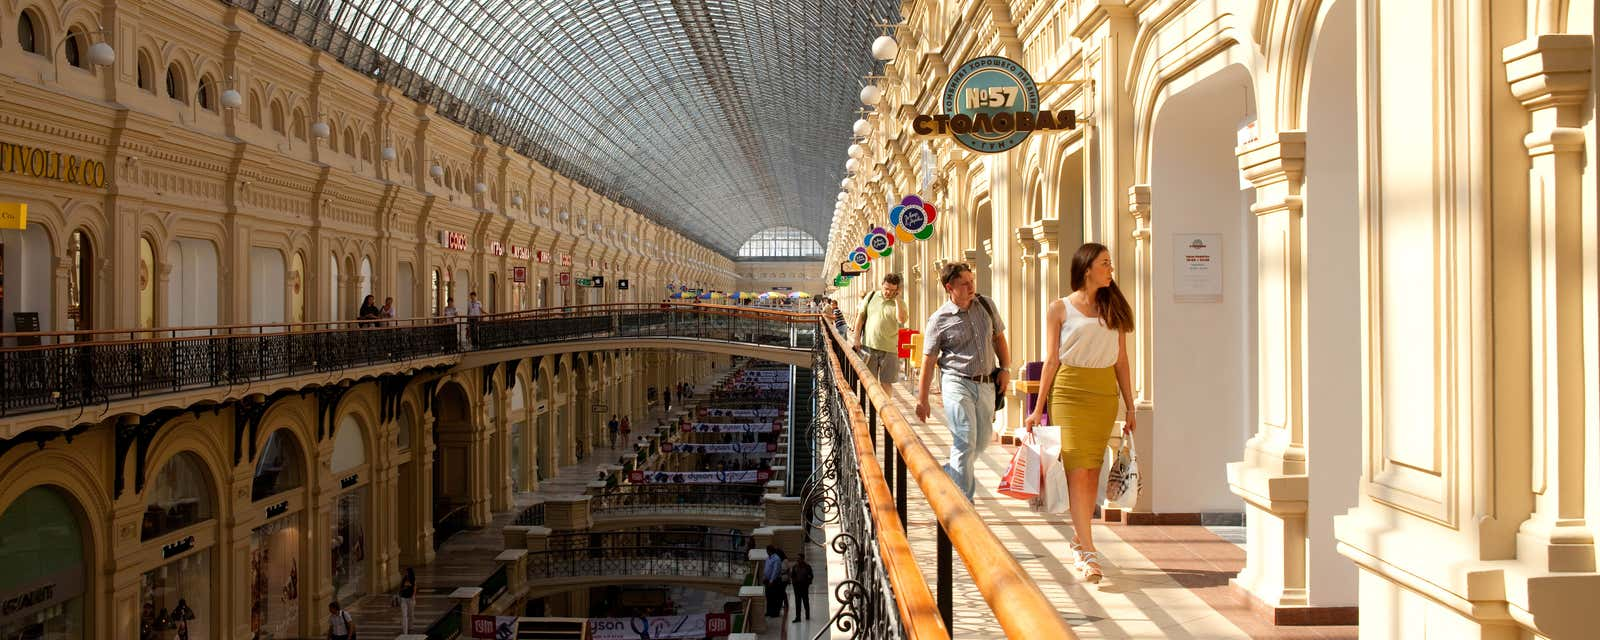 Shoppers browsing stores at GUM, Moscow, Russia.